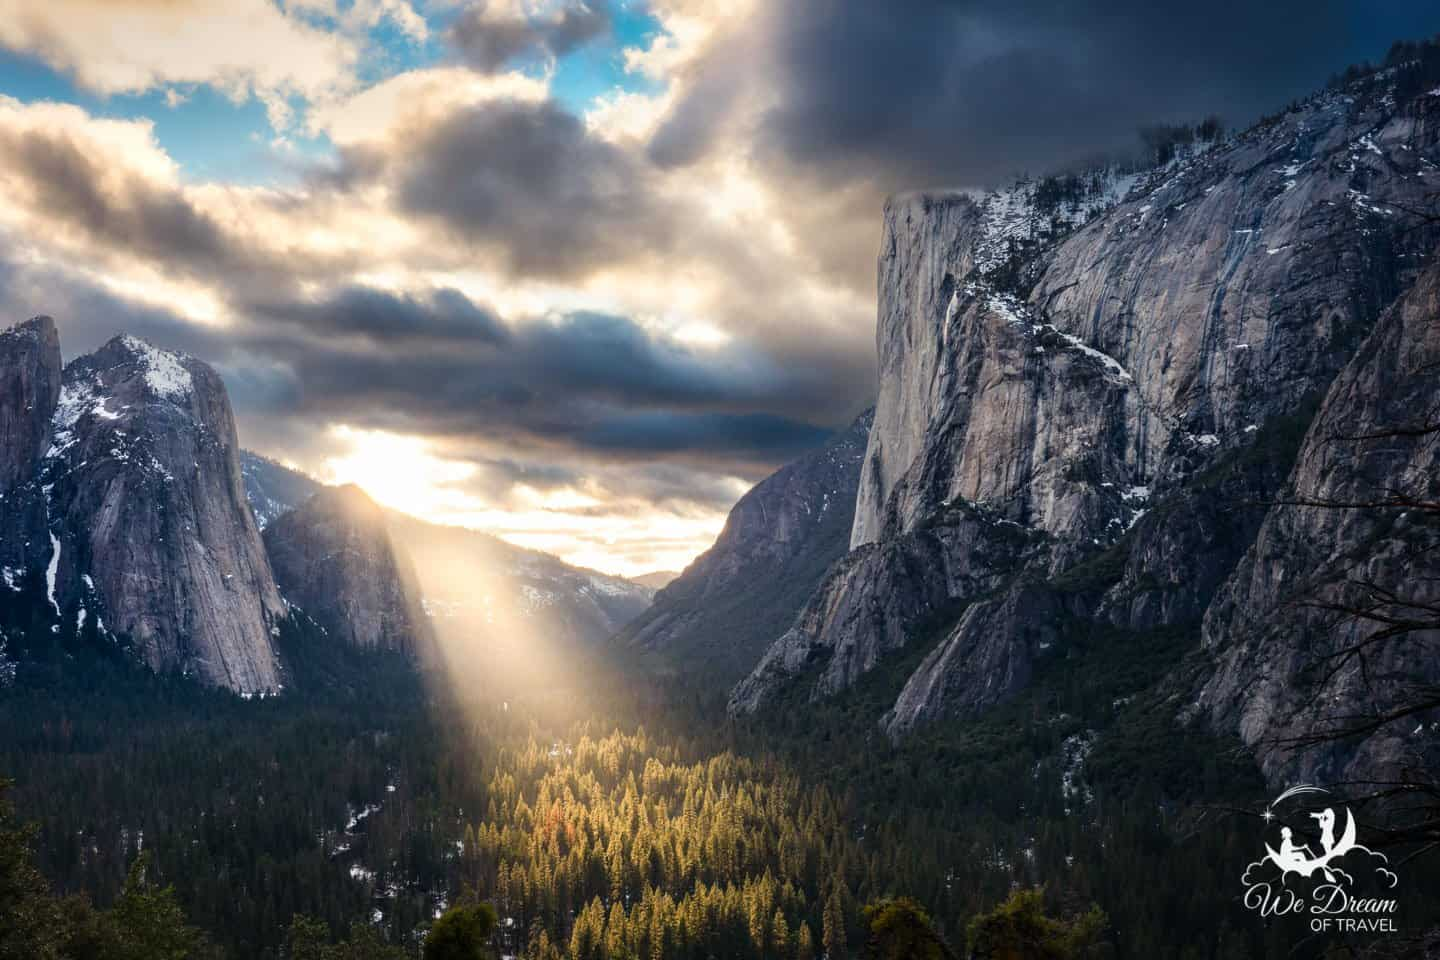 The Four Mile Hike view provides unbeatable views of the Yosemite Valley.